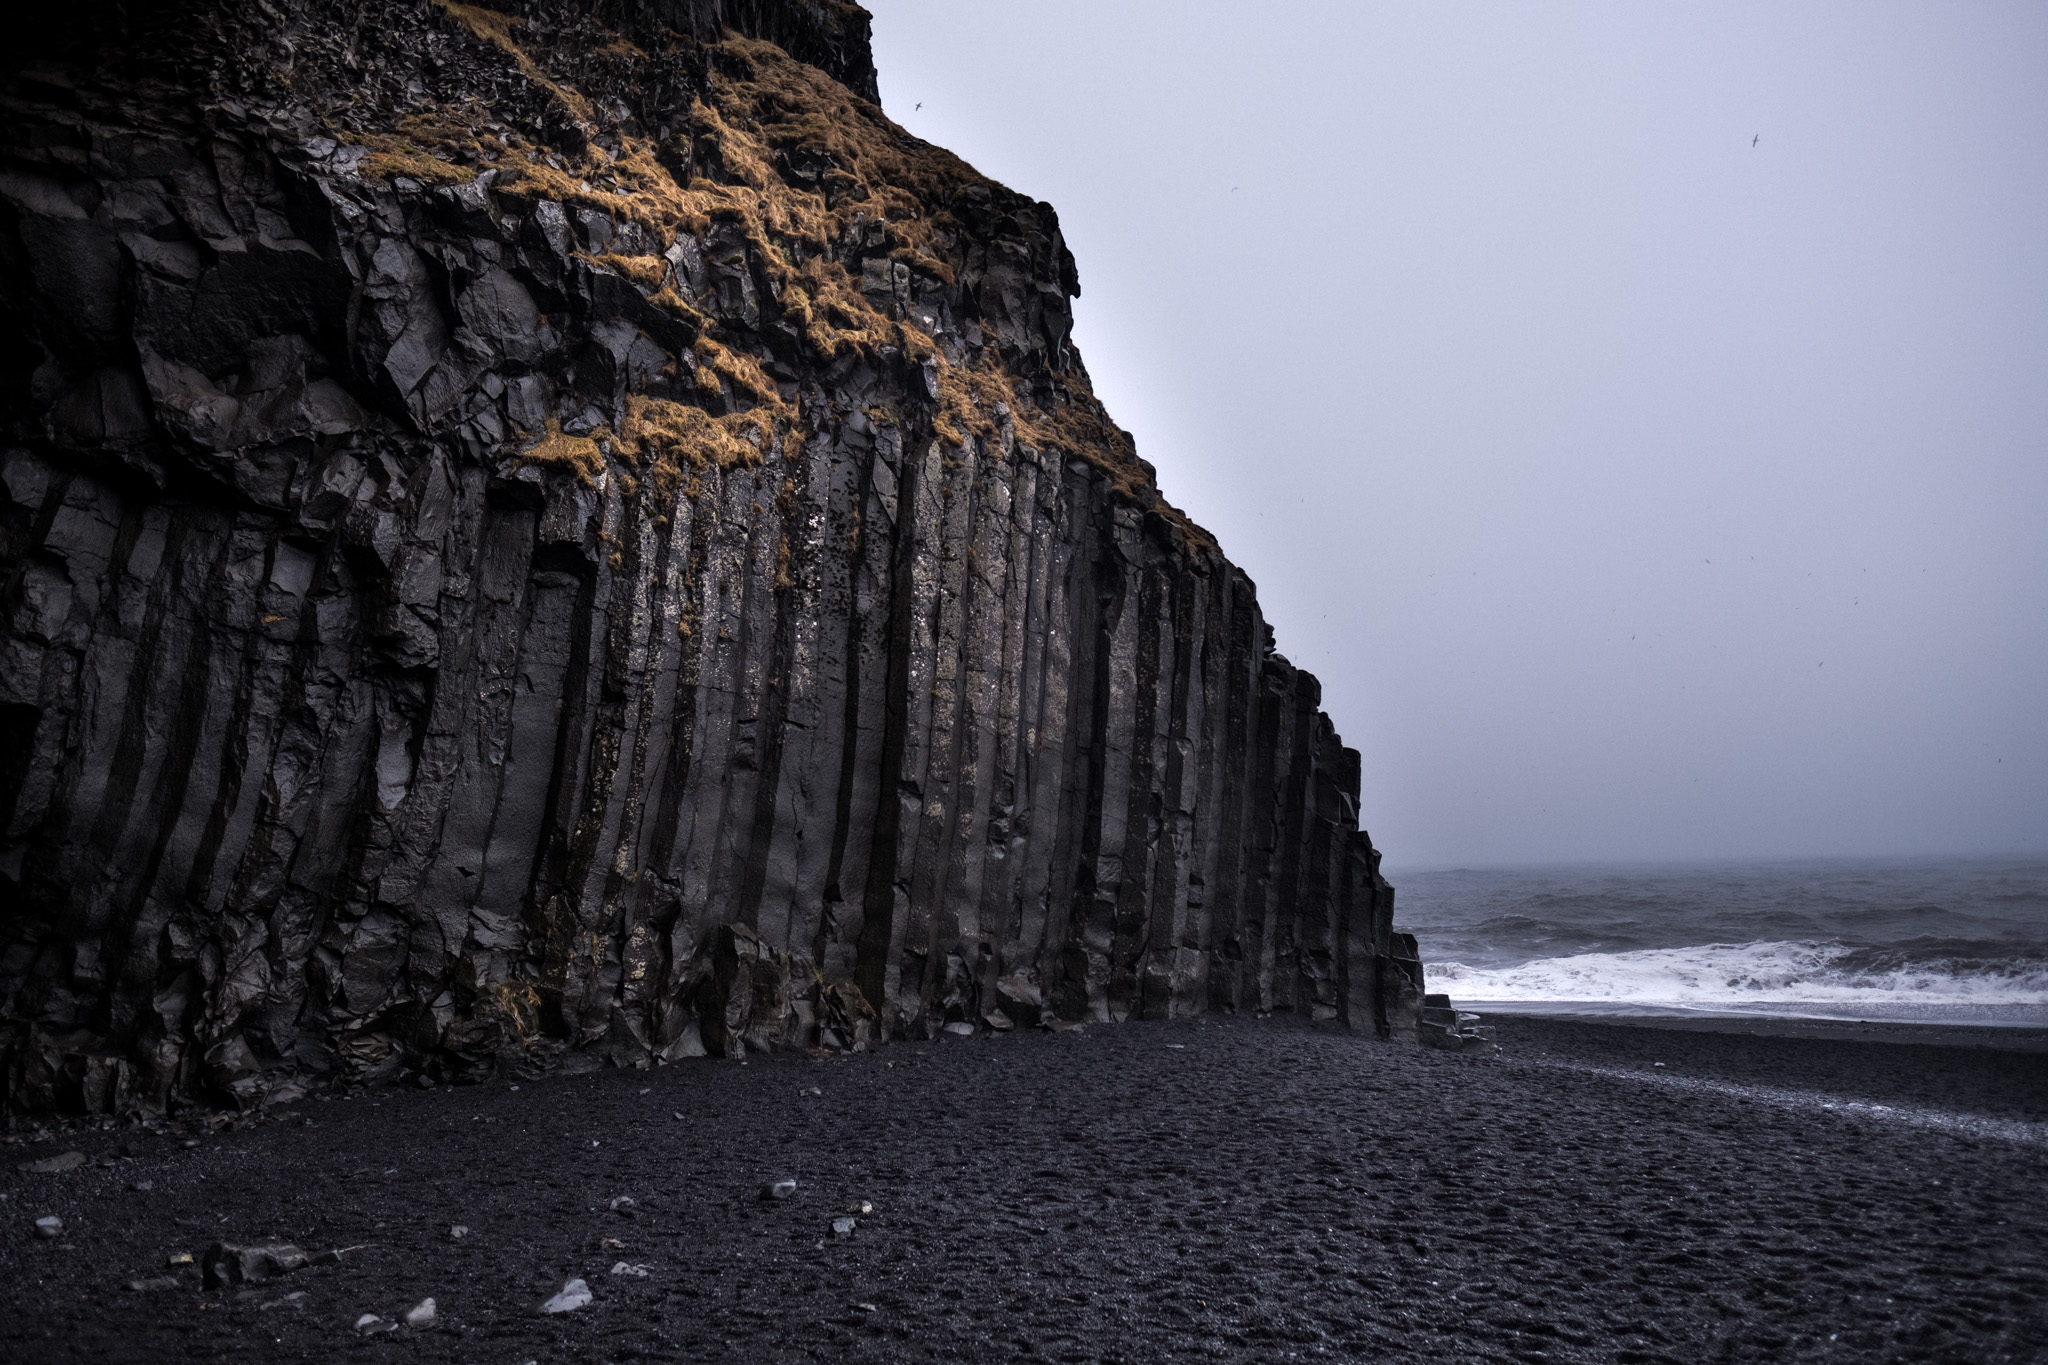 20170403155608_Iceland_By_EjunLow_0198.jpg